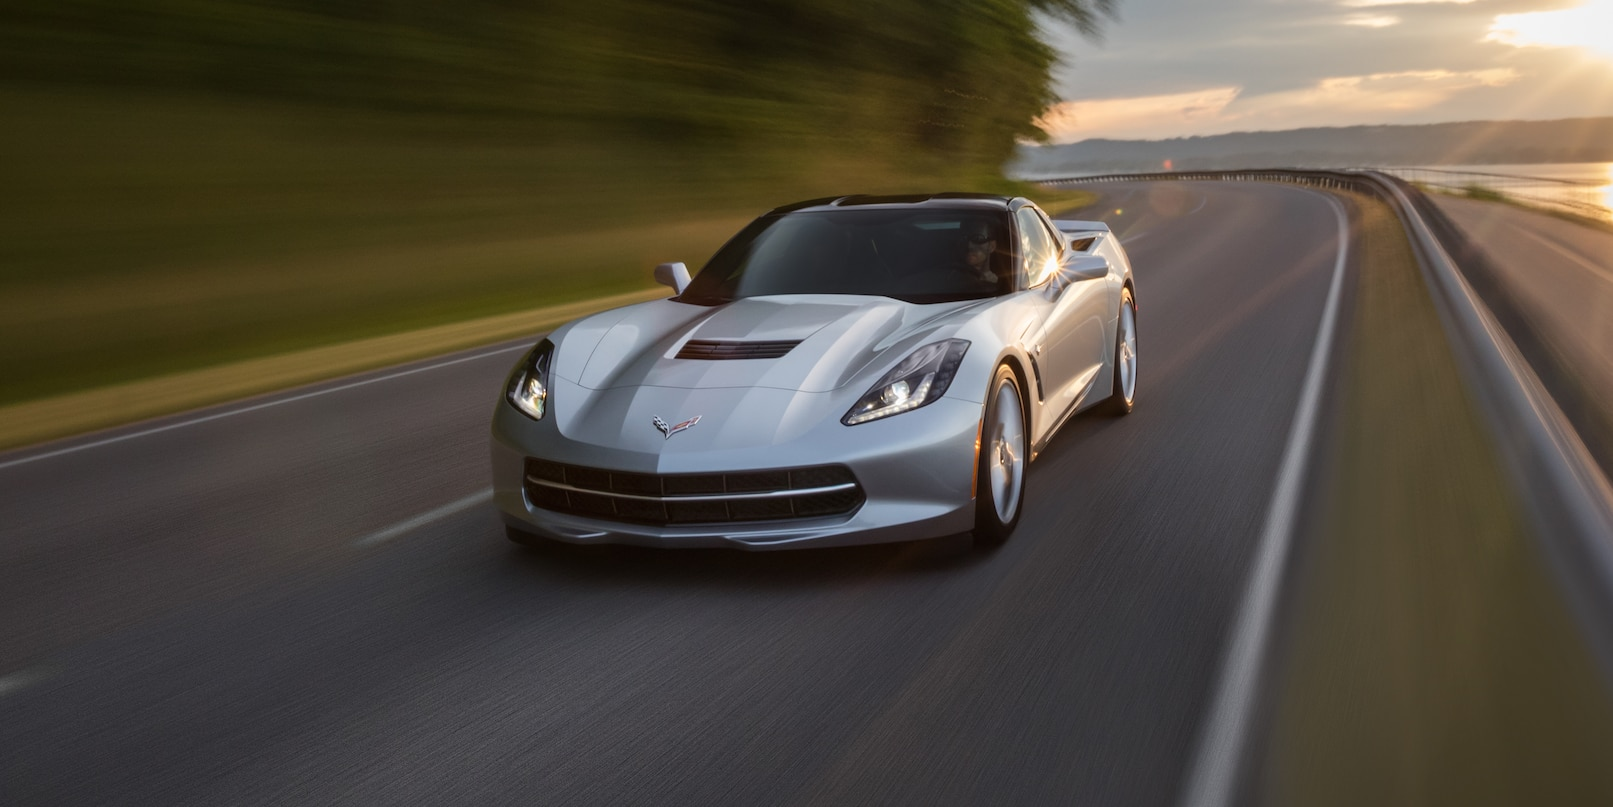 2019 Chevrolet Corvette Leasing near Manassas, VA